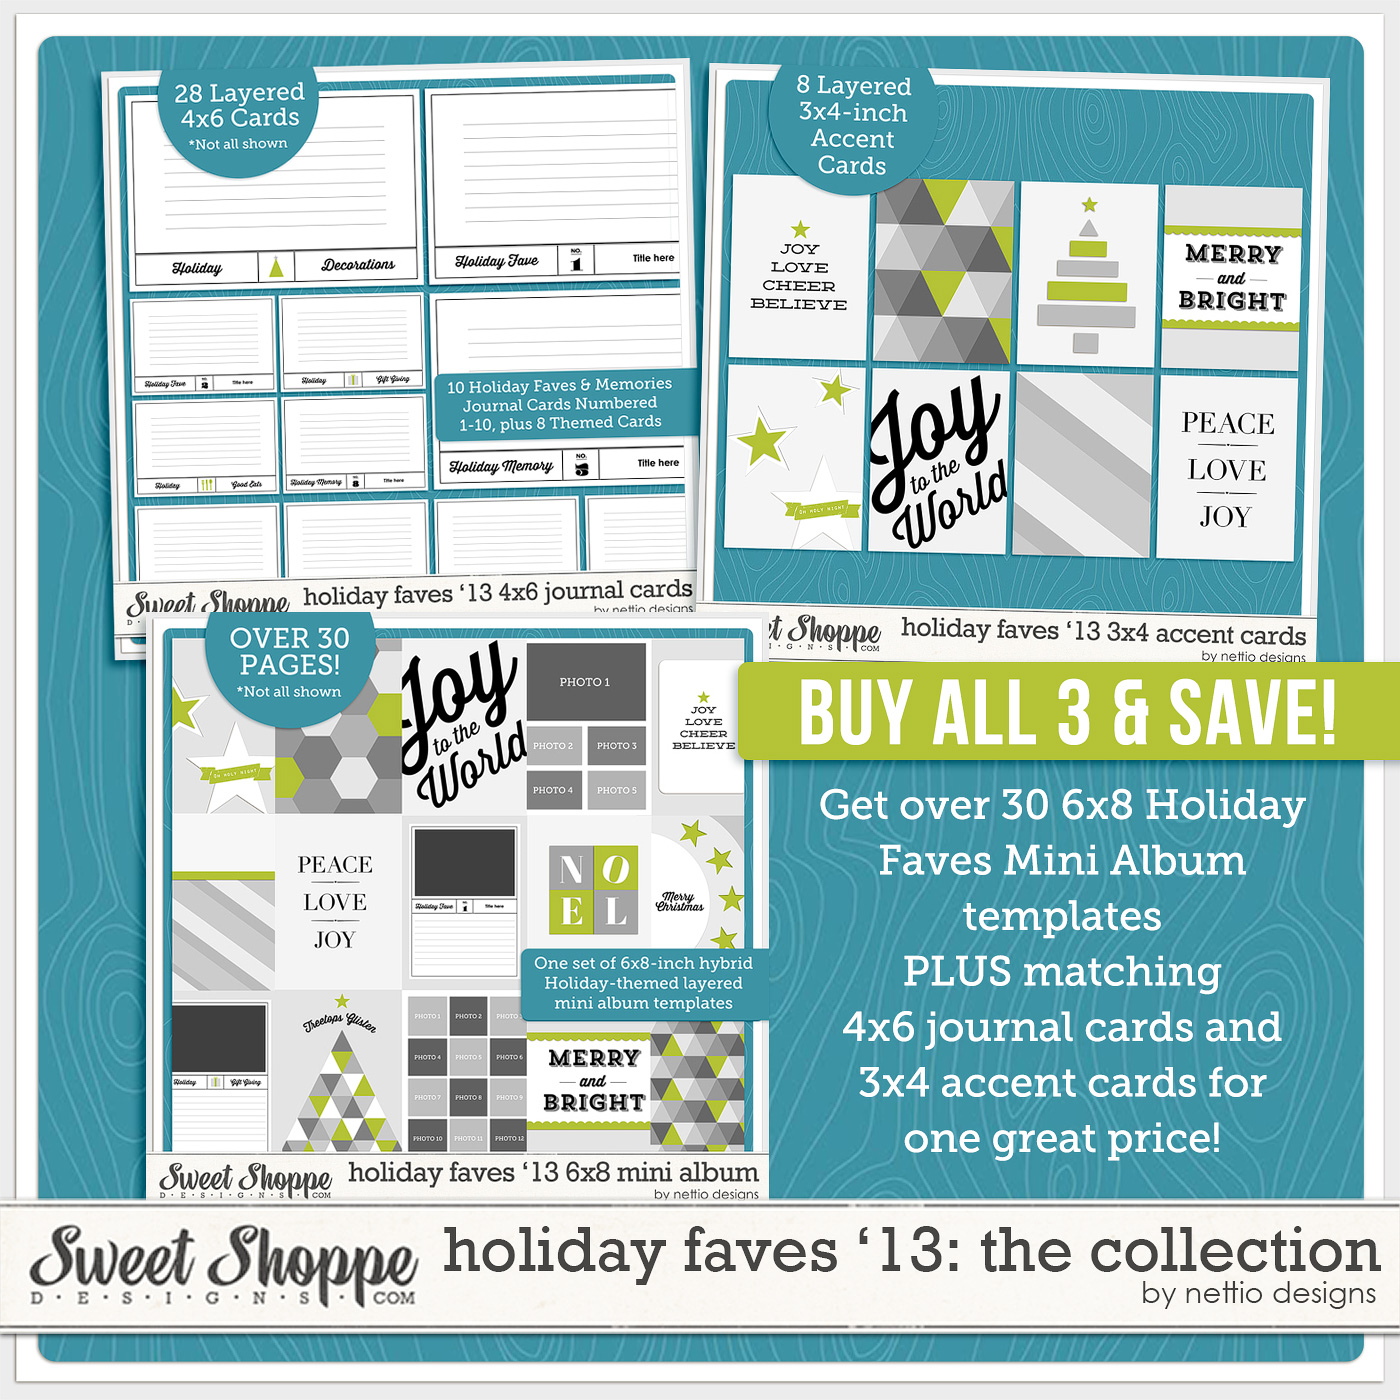 nettiodesigns_HolidayFaves13Collection-prev-1400